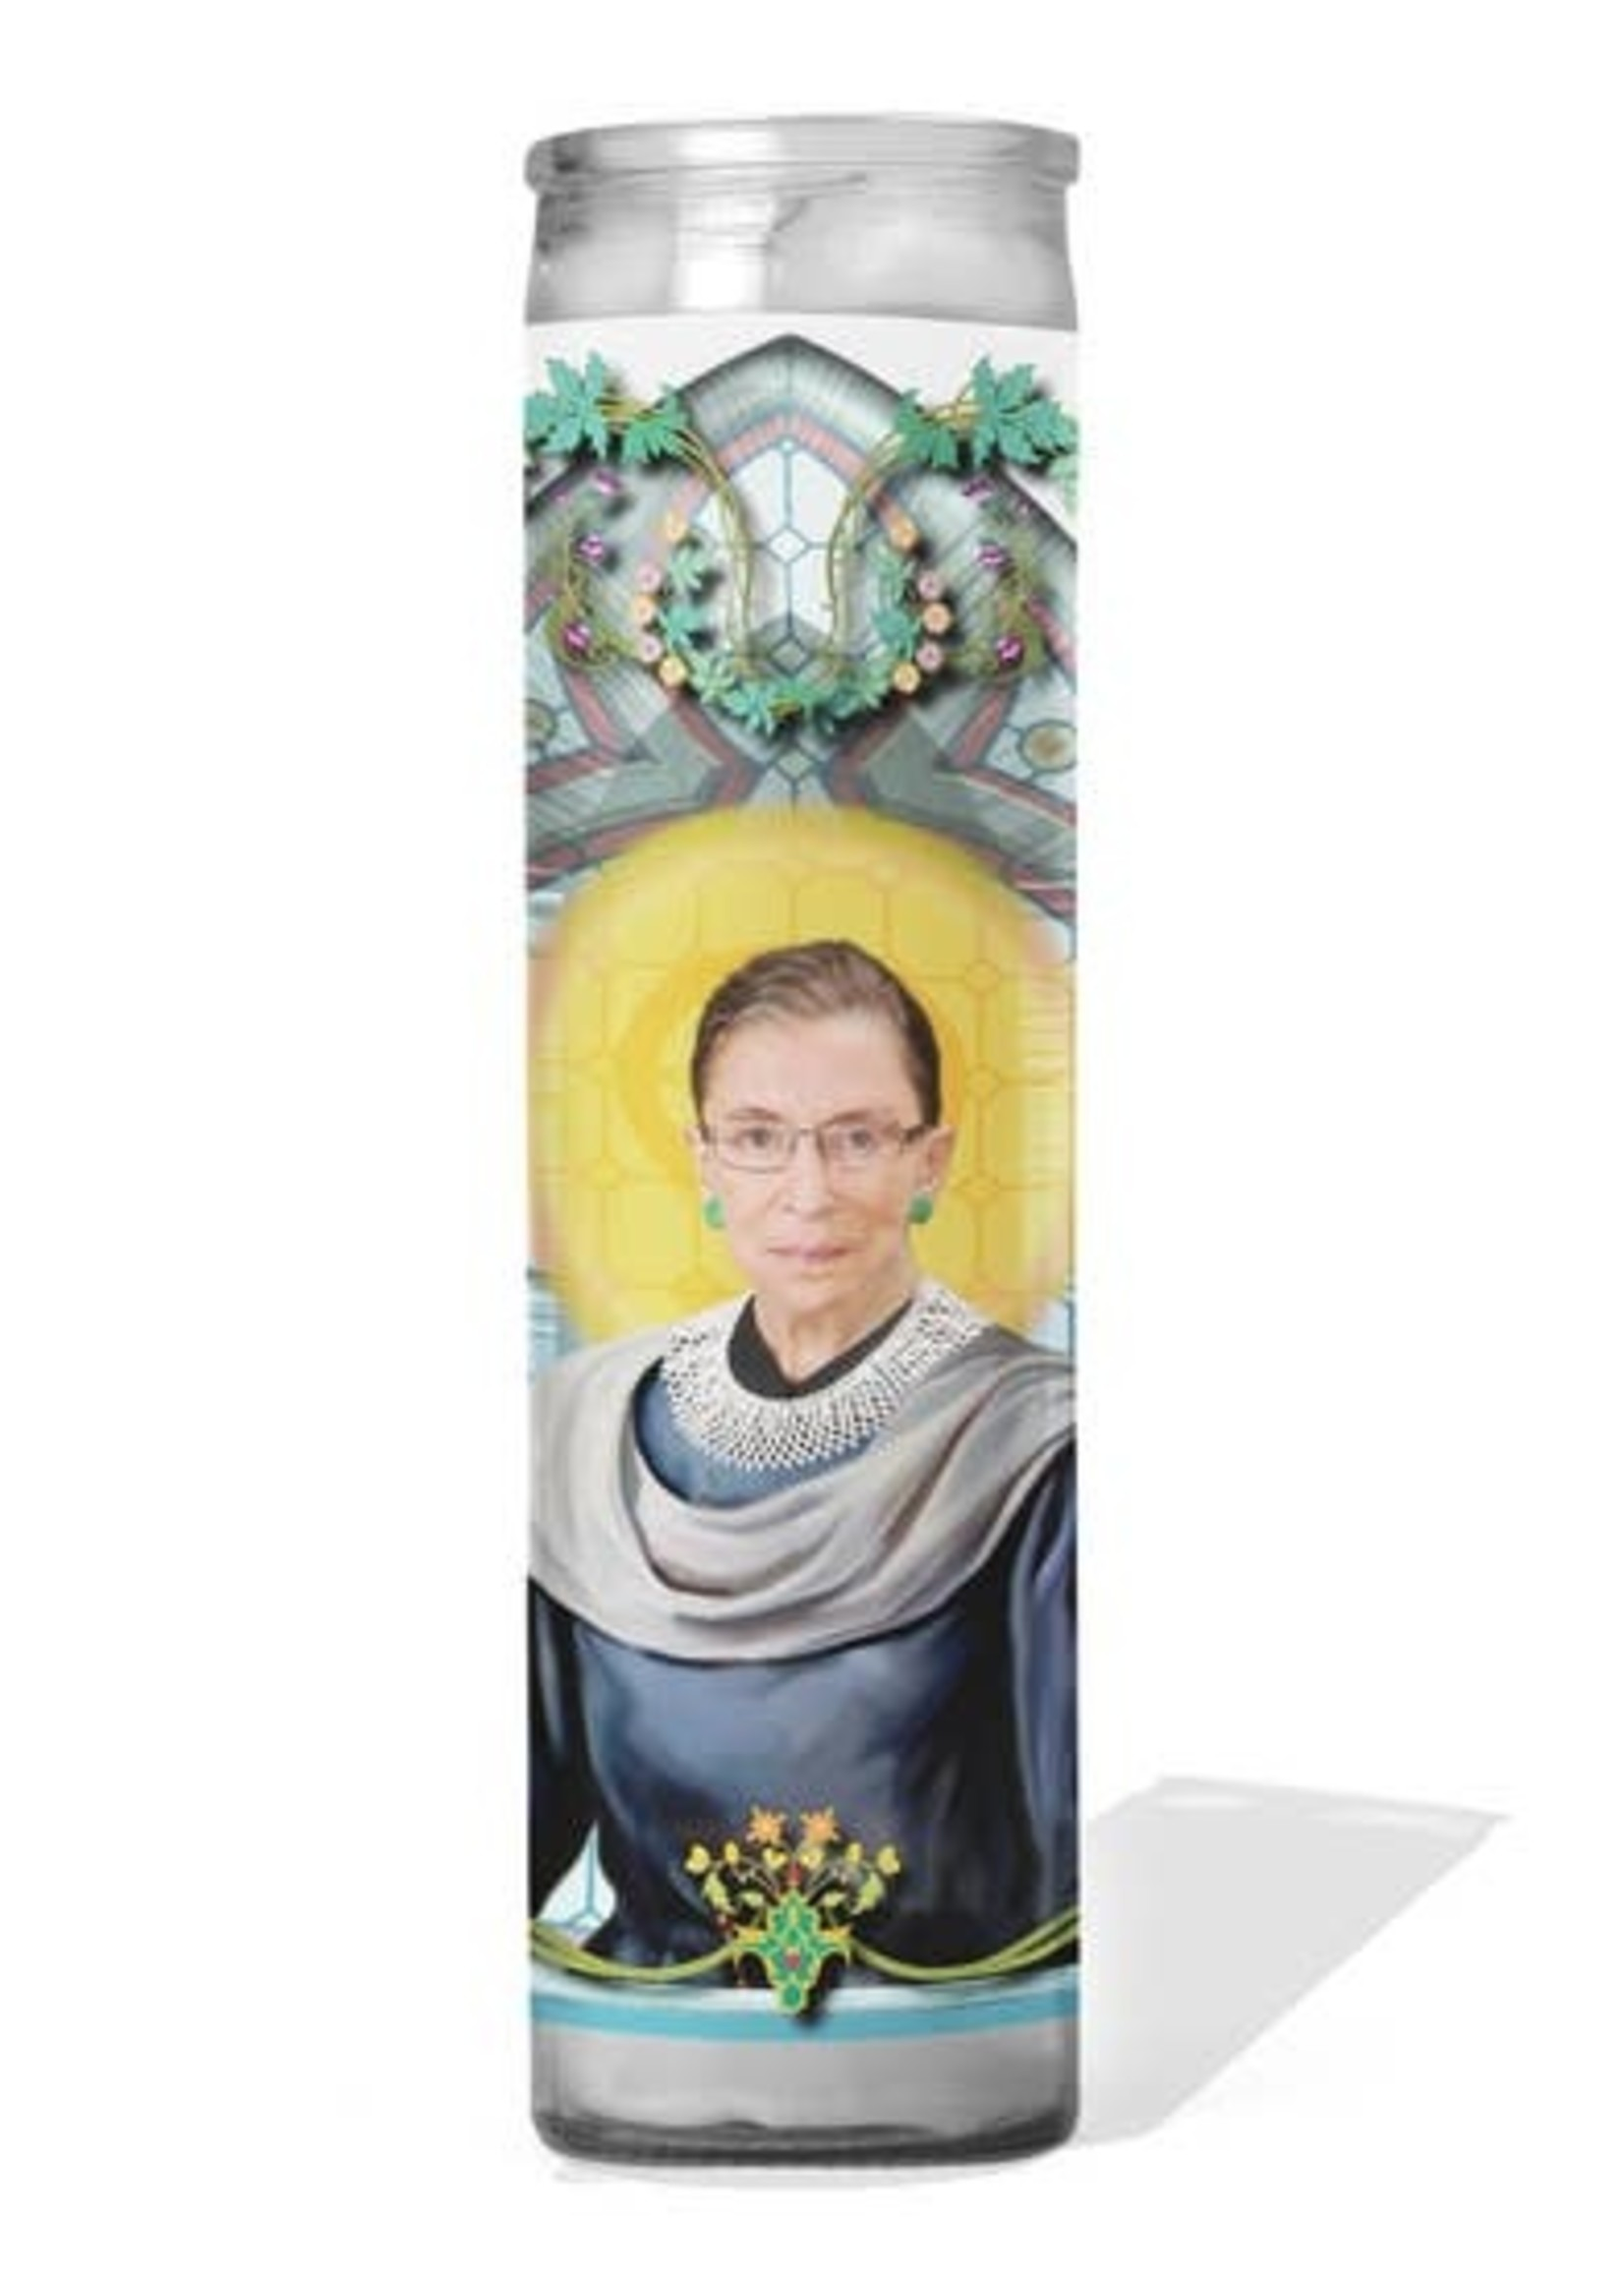 CALM DOWN CAREN CALM DOWN CAREN - RBG PRAYER CANDLE